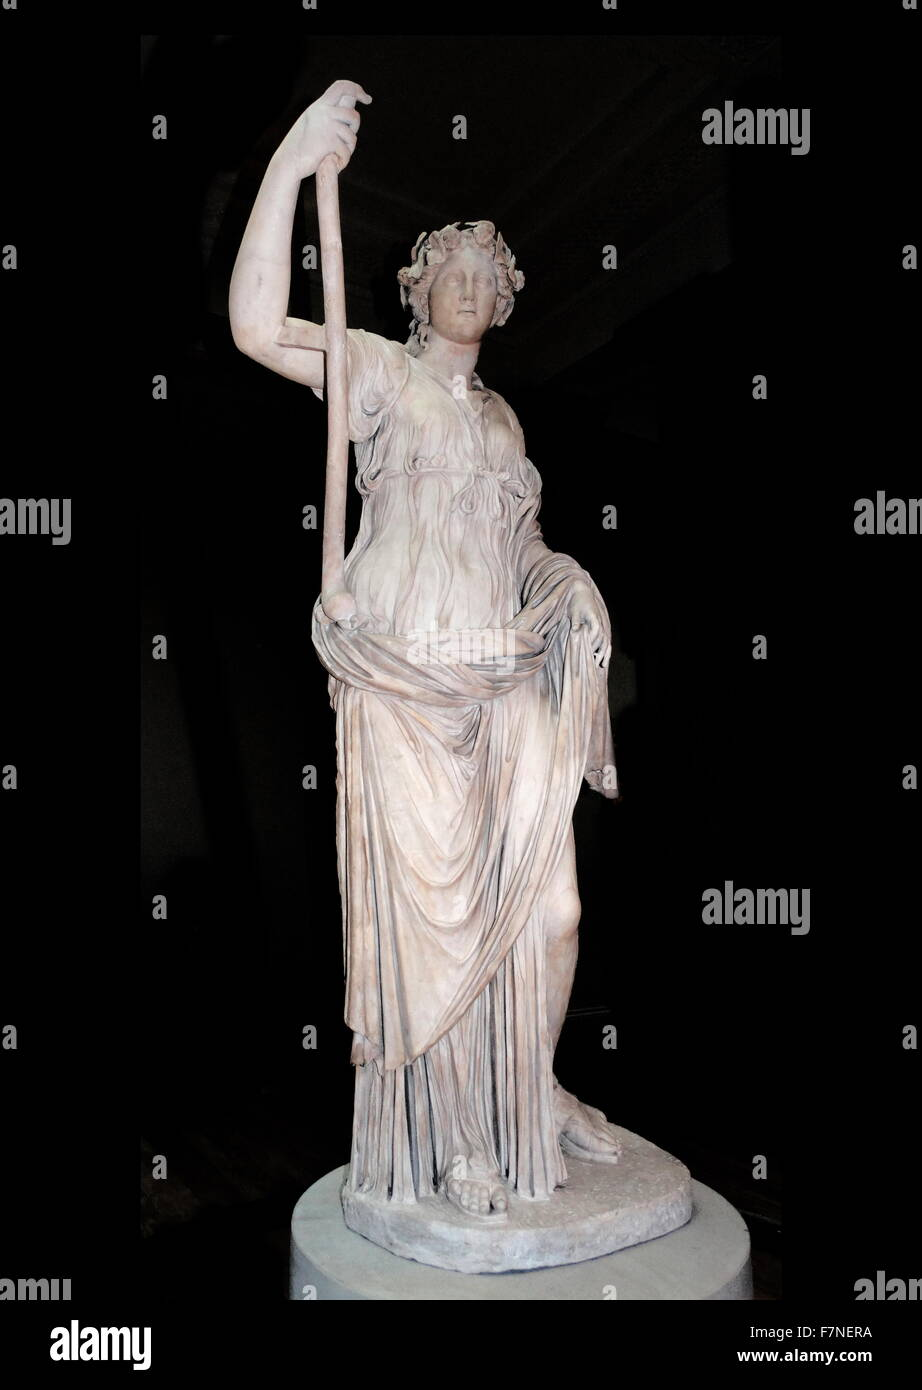 Thalia, the muse of Comedy. Roman, 2nd century AD - Stock Image